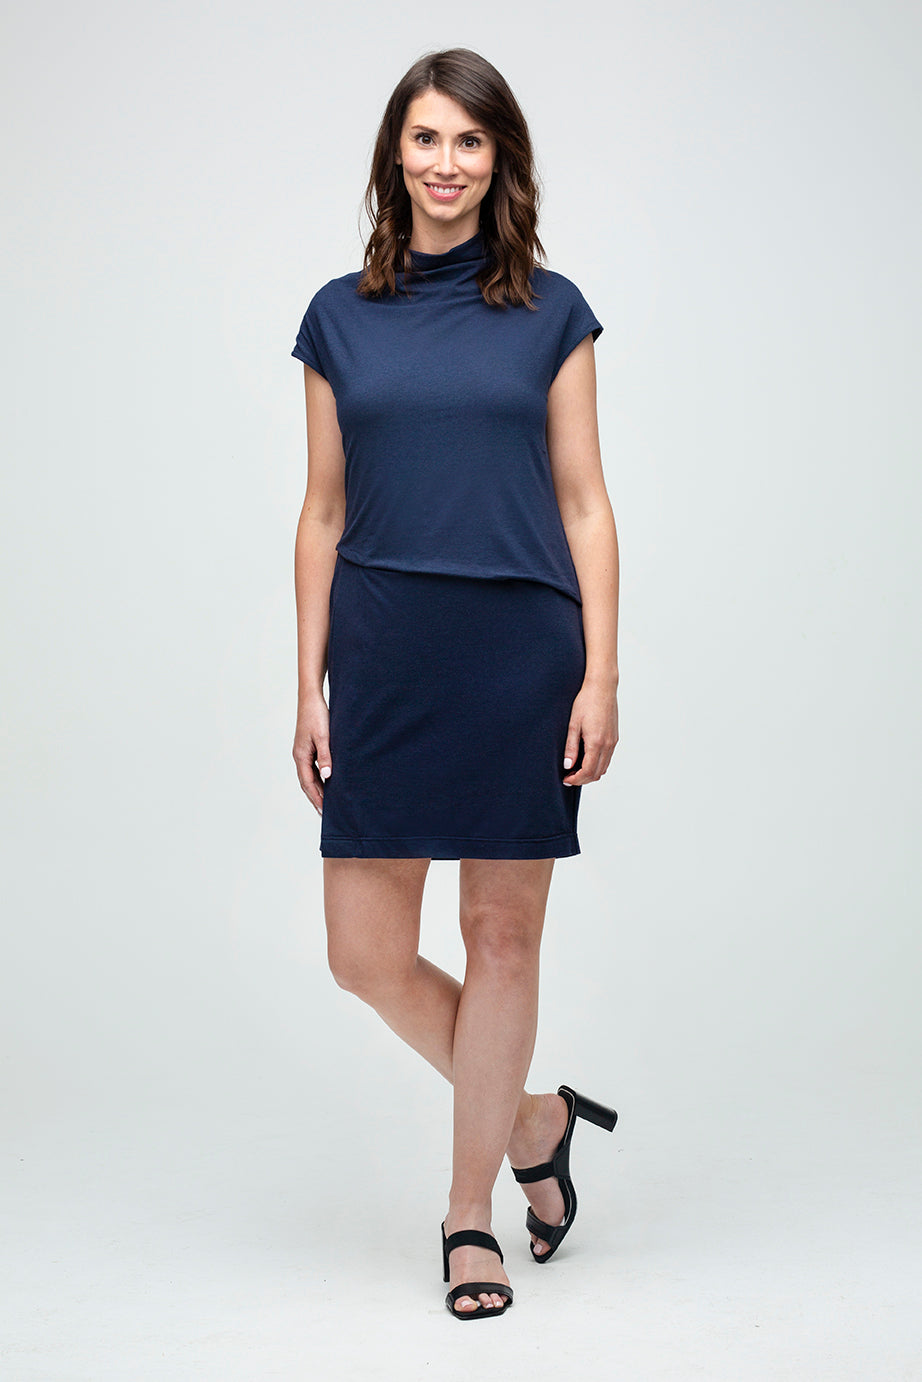 Everywhere Sleeveless Dress in Navy